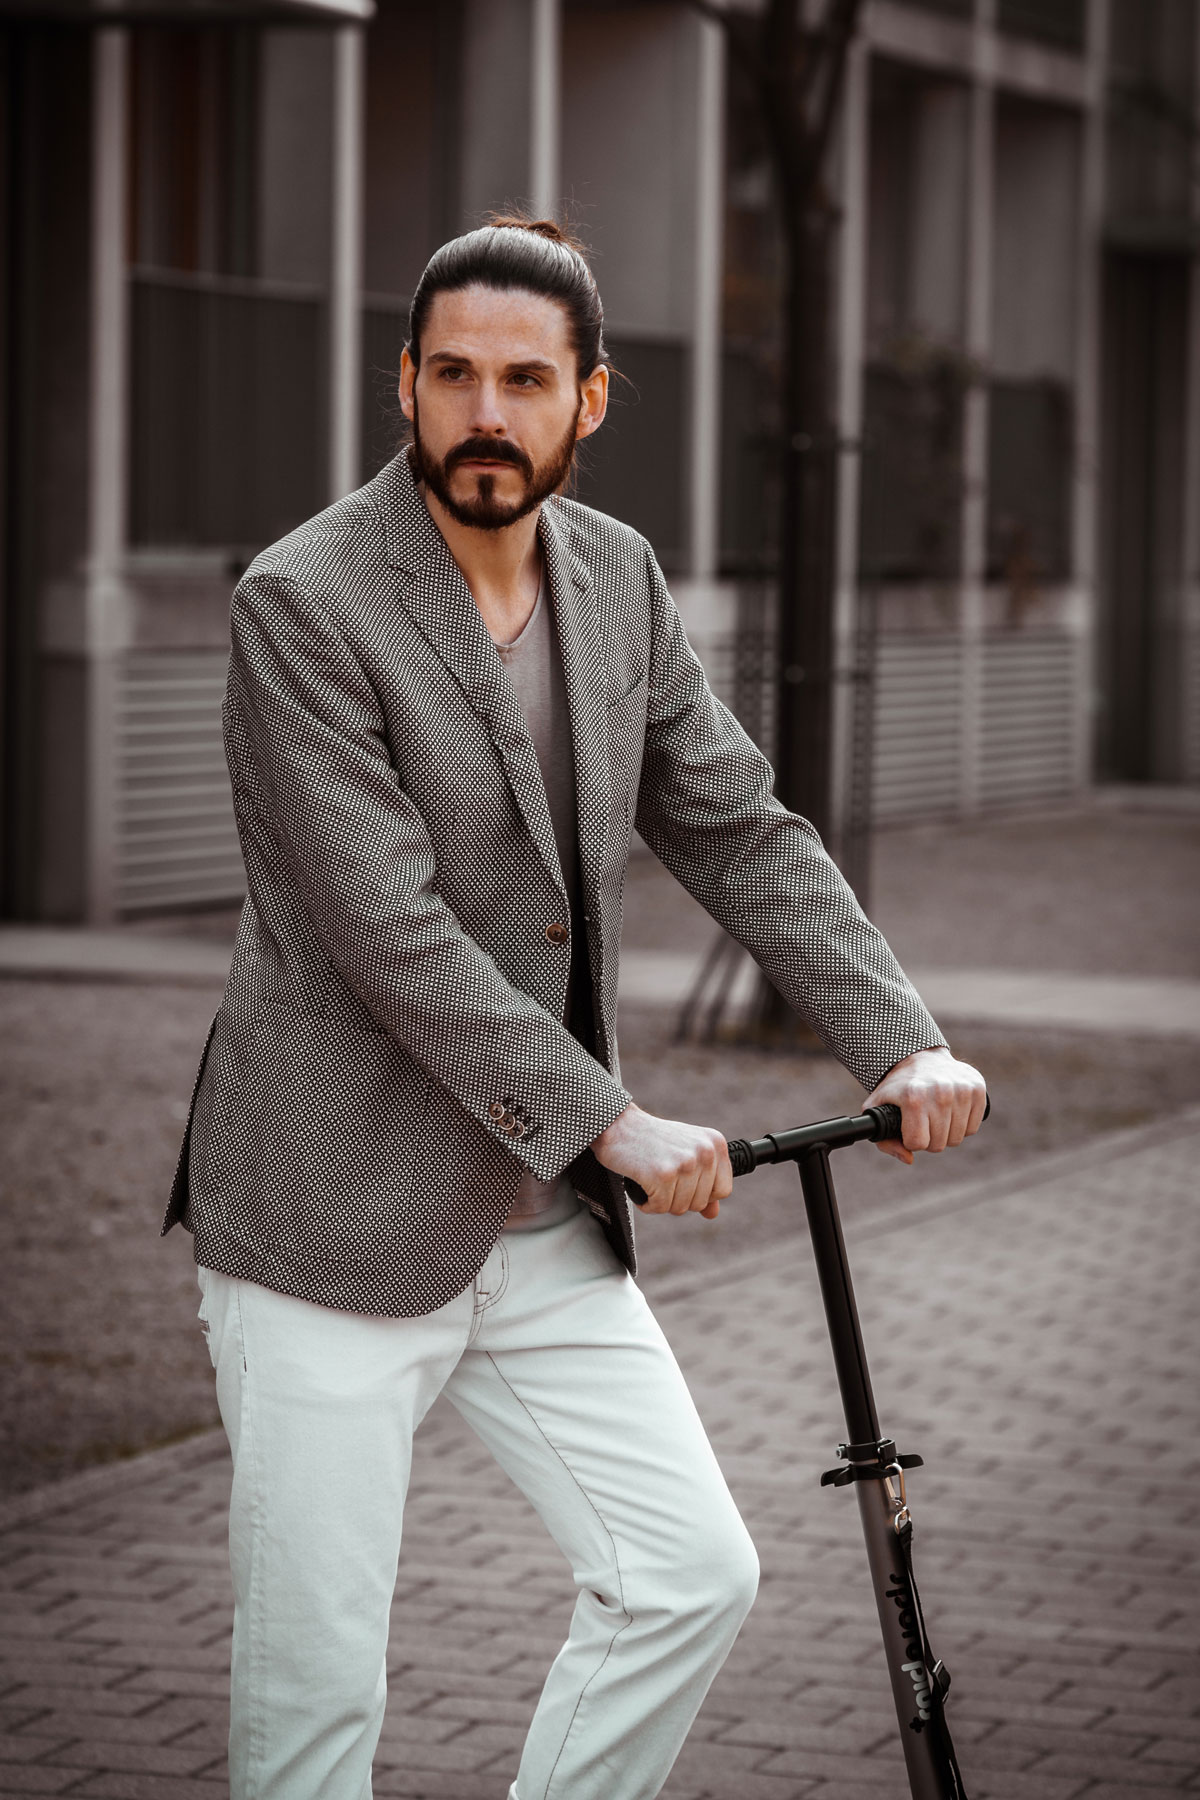 Maennermode-Blog-Business-Look-Sommer-Otto-Kern-Sakko-Jeans-Outfit